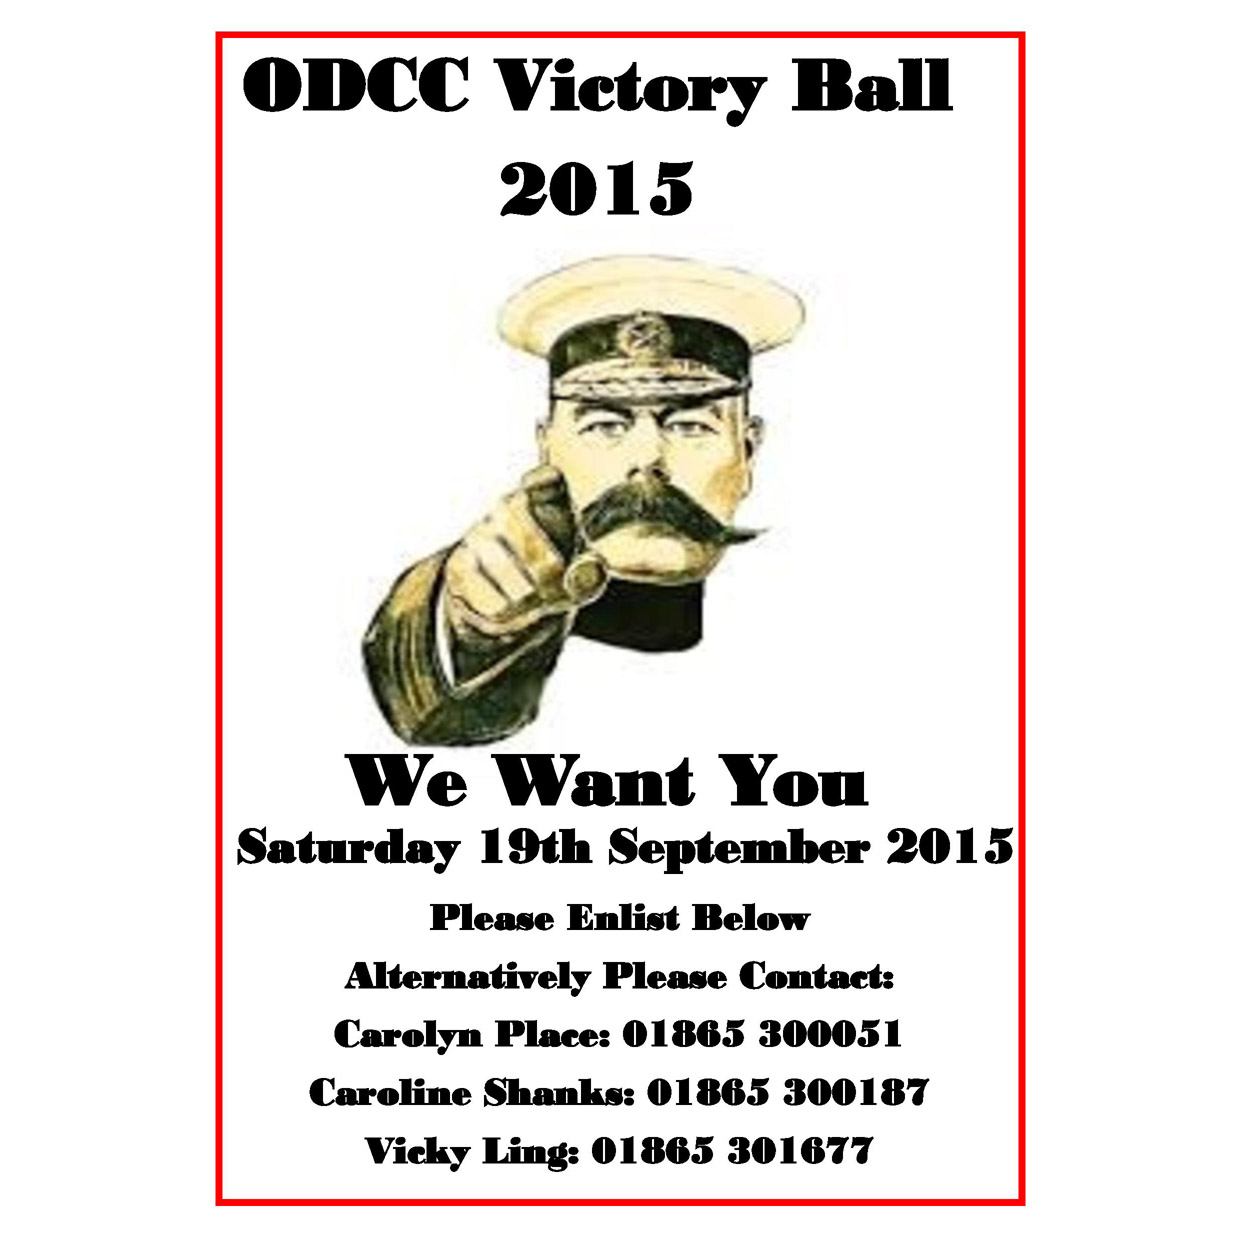 ODCC Victory Ball 2015